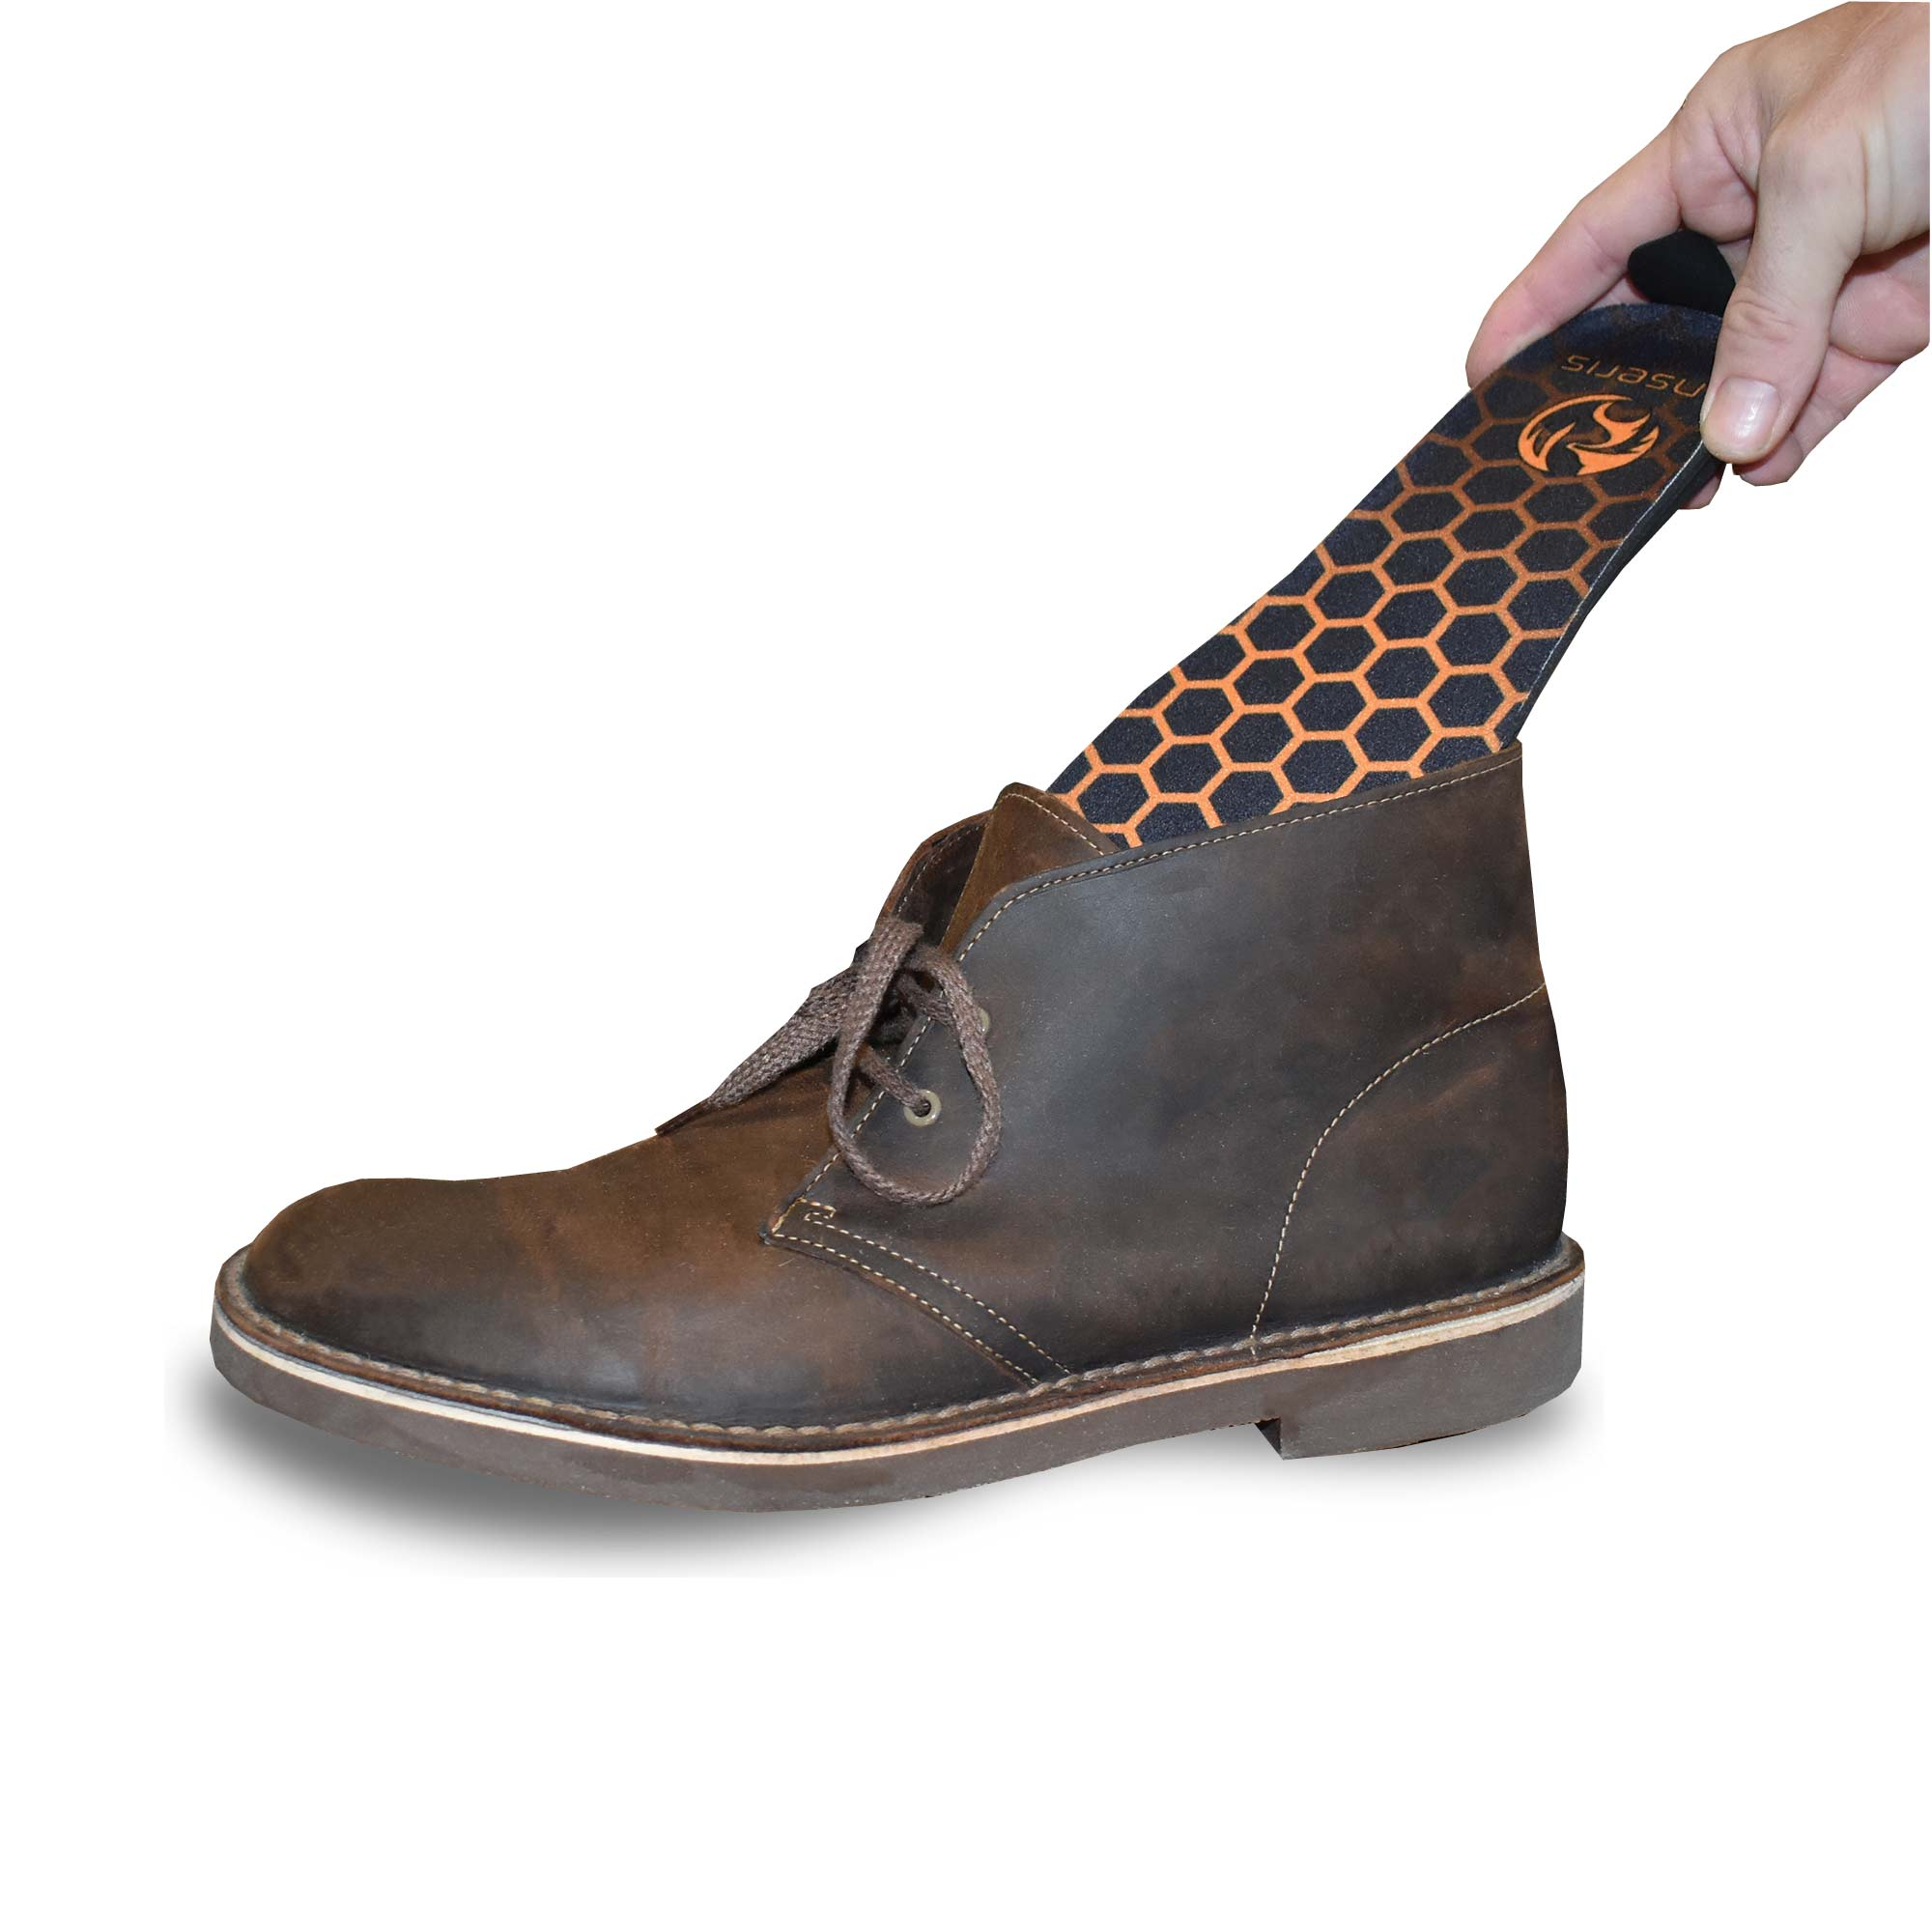 our heated insoles feature an easy trim to fit insole that makes them easy to fit in any of your shoes or boots.  use in your everyday shoes or for other activites like hunting, fishing, snowboarding, skiing or running.